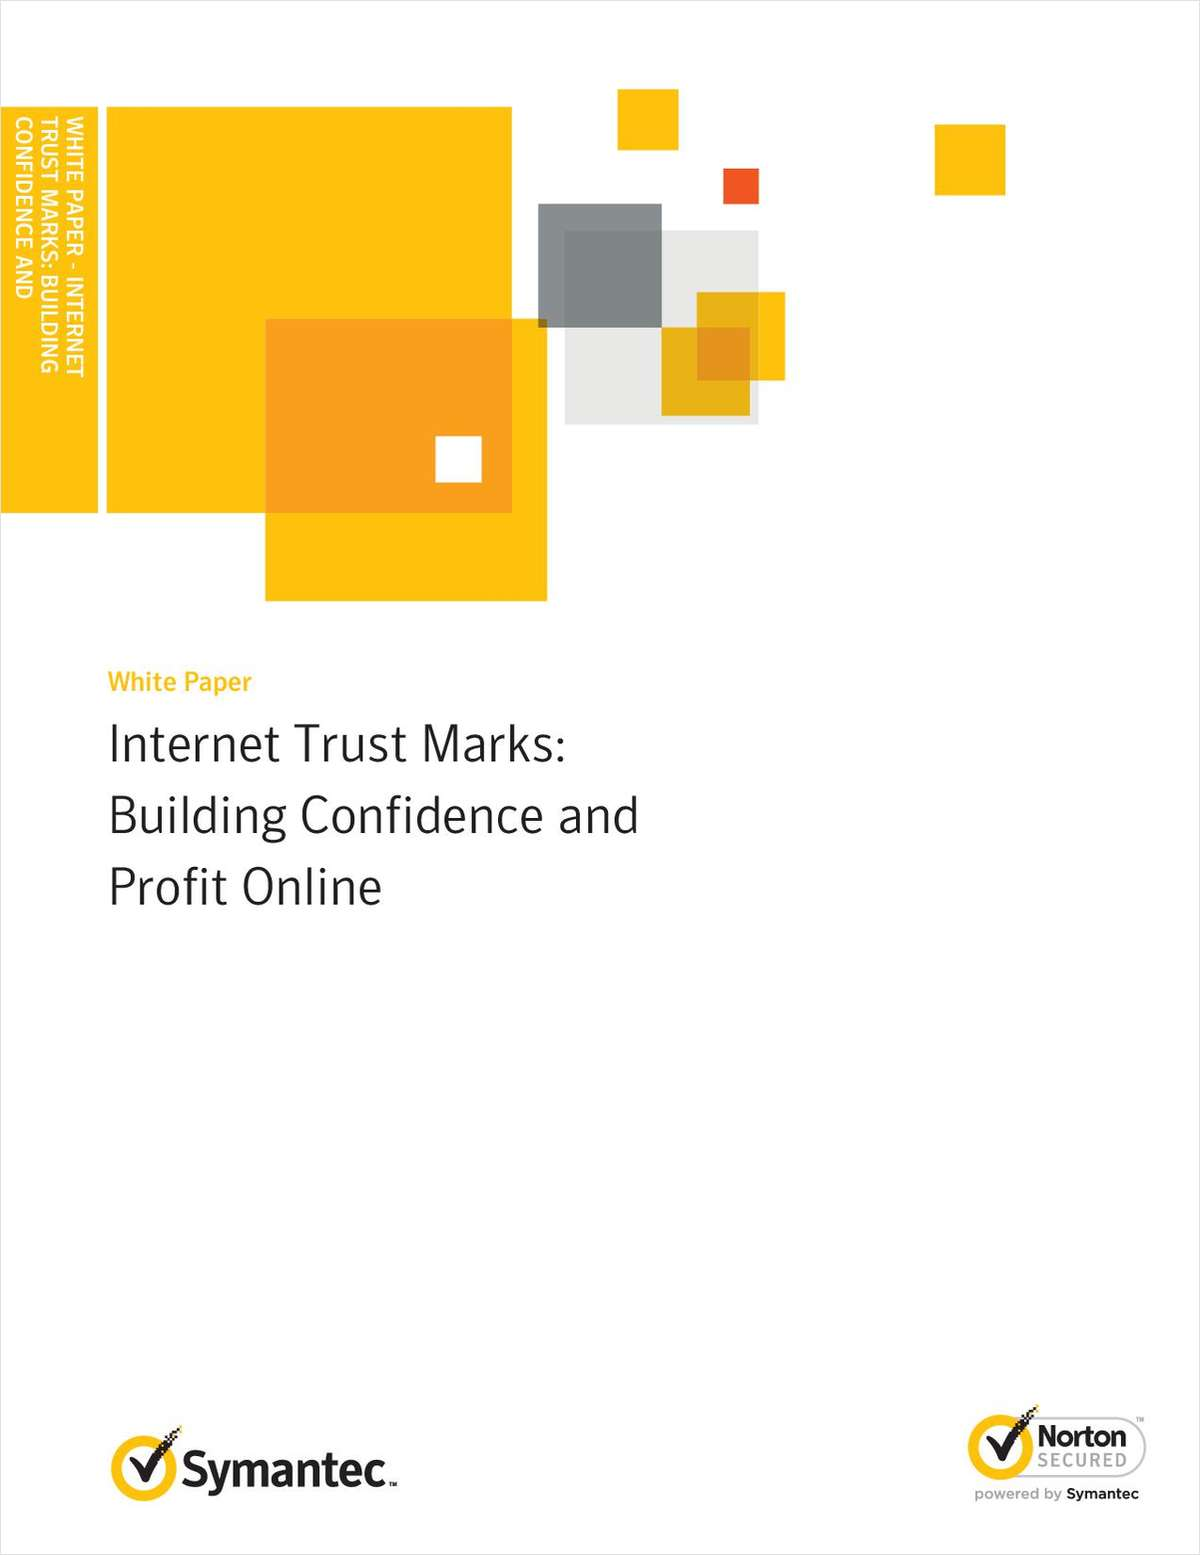 Internet Trust Marks: Building Confidence and Profit Online